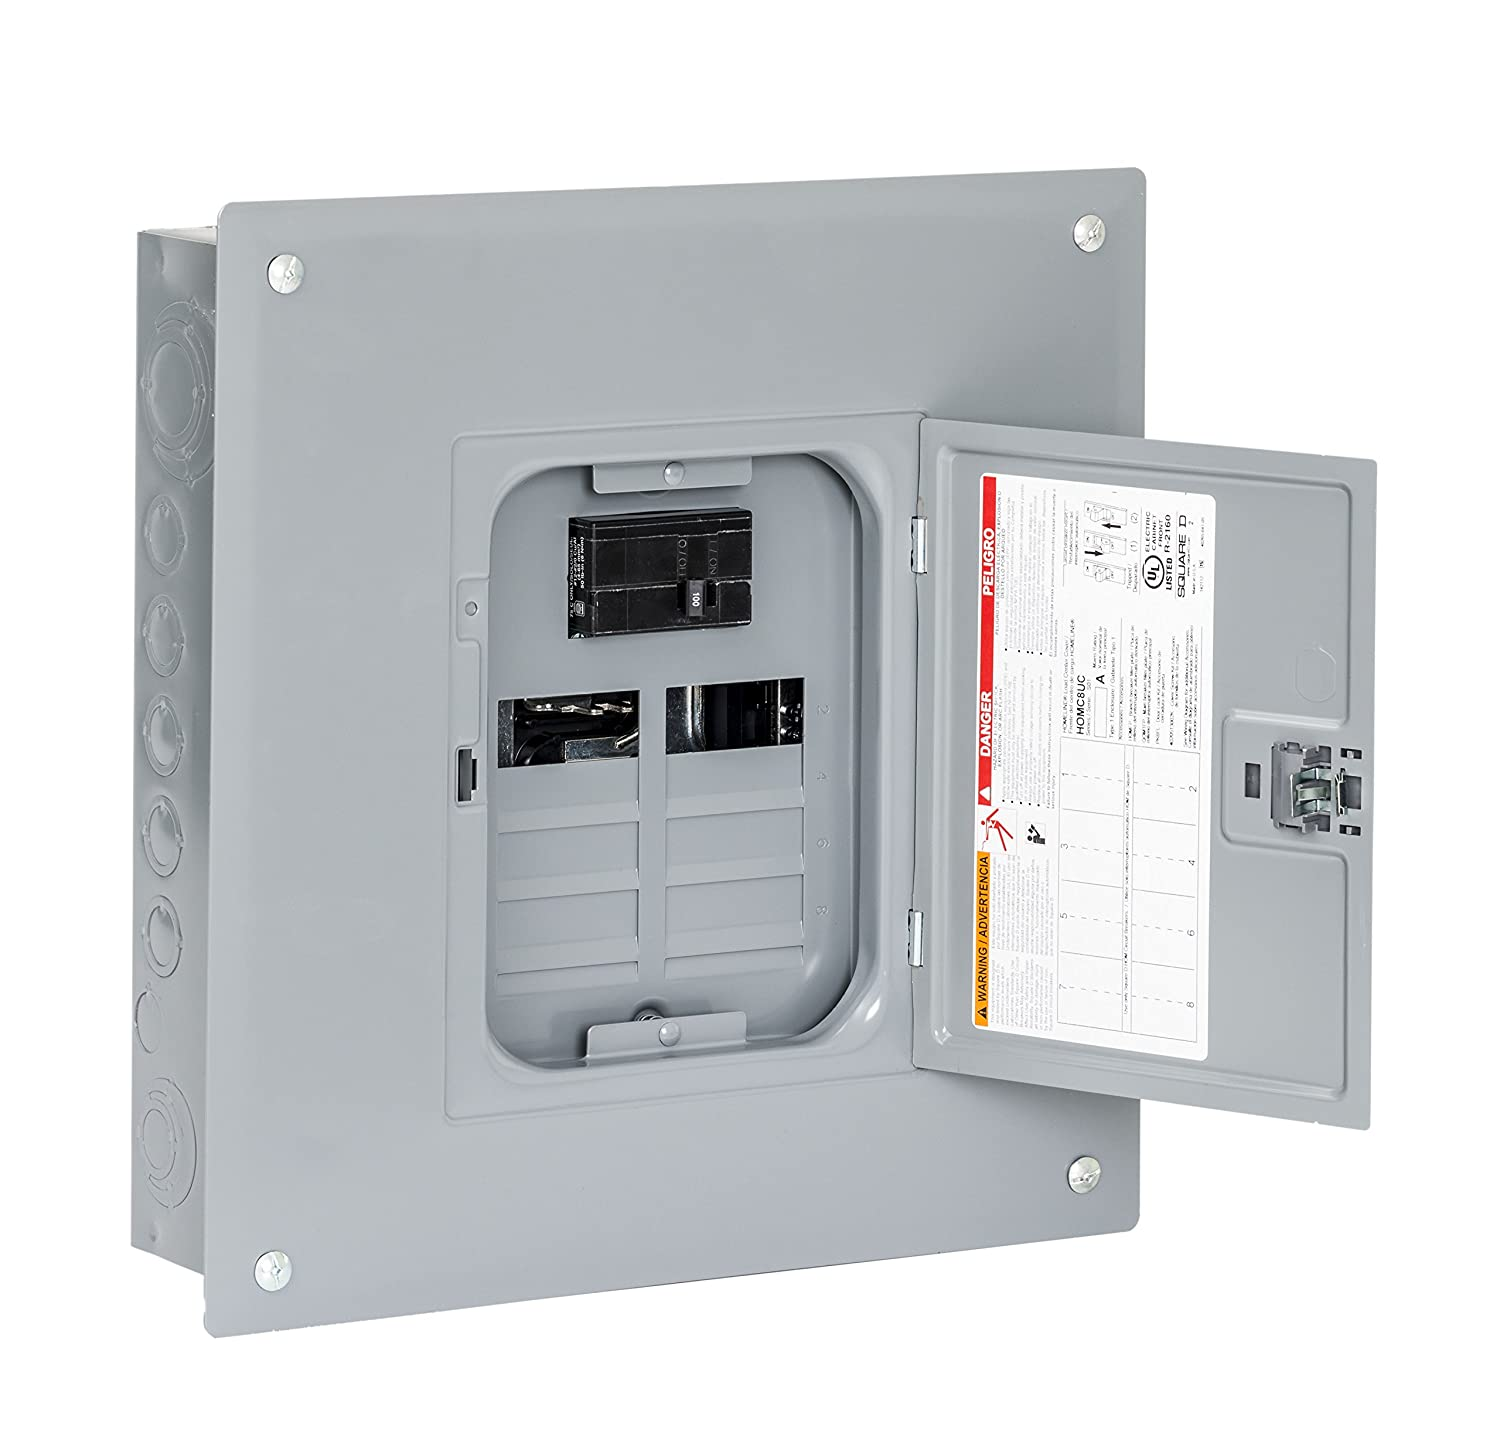 Square D By Schneider Electric Hom816m100pc Homeline 100 Amp 8 Space Circuit Breaker Panel Box In Addition Residential 16 Indoor Main Load Center With Cover Plug On Neutral Ready